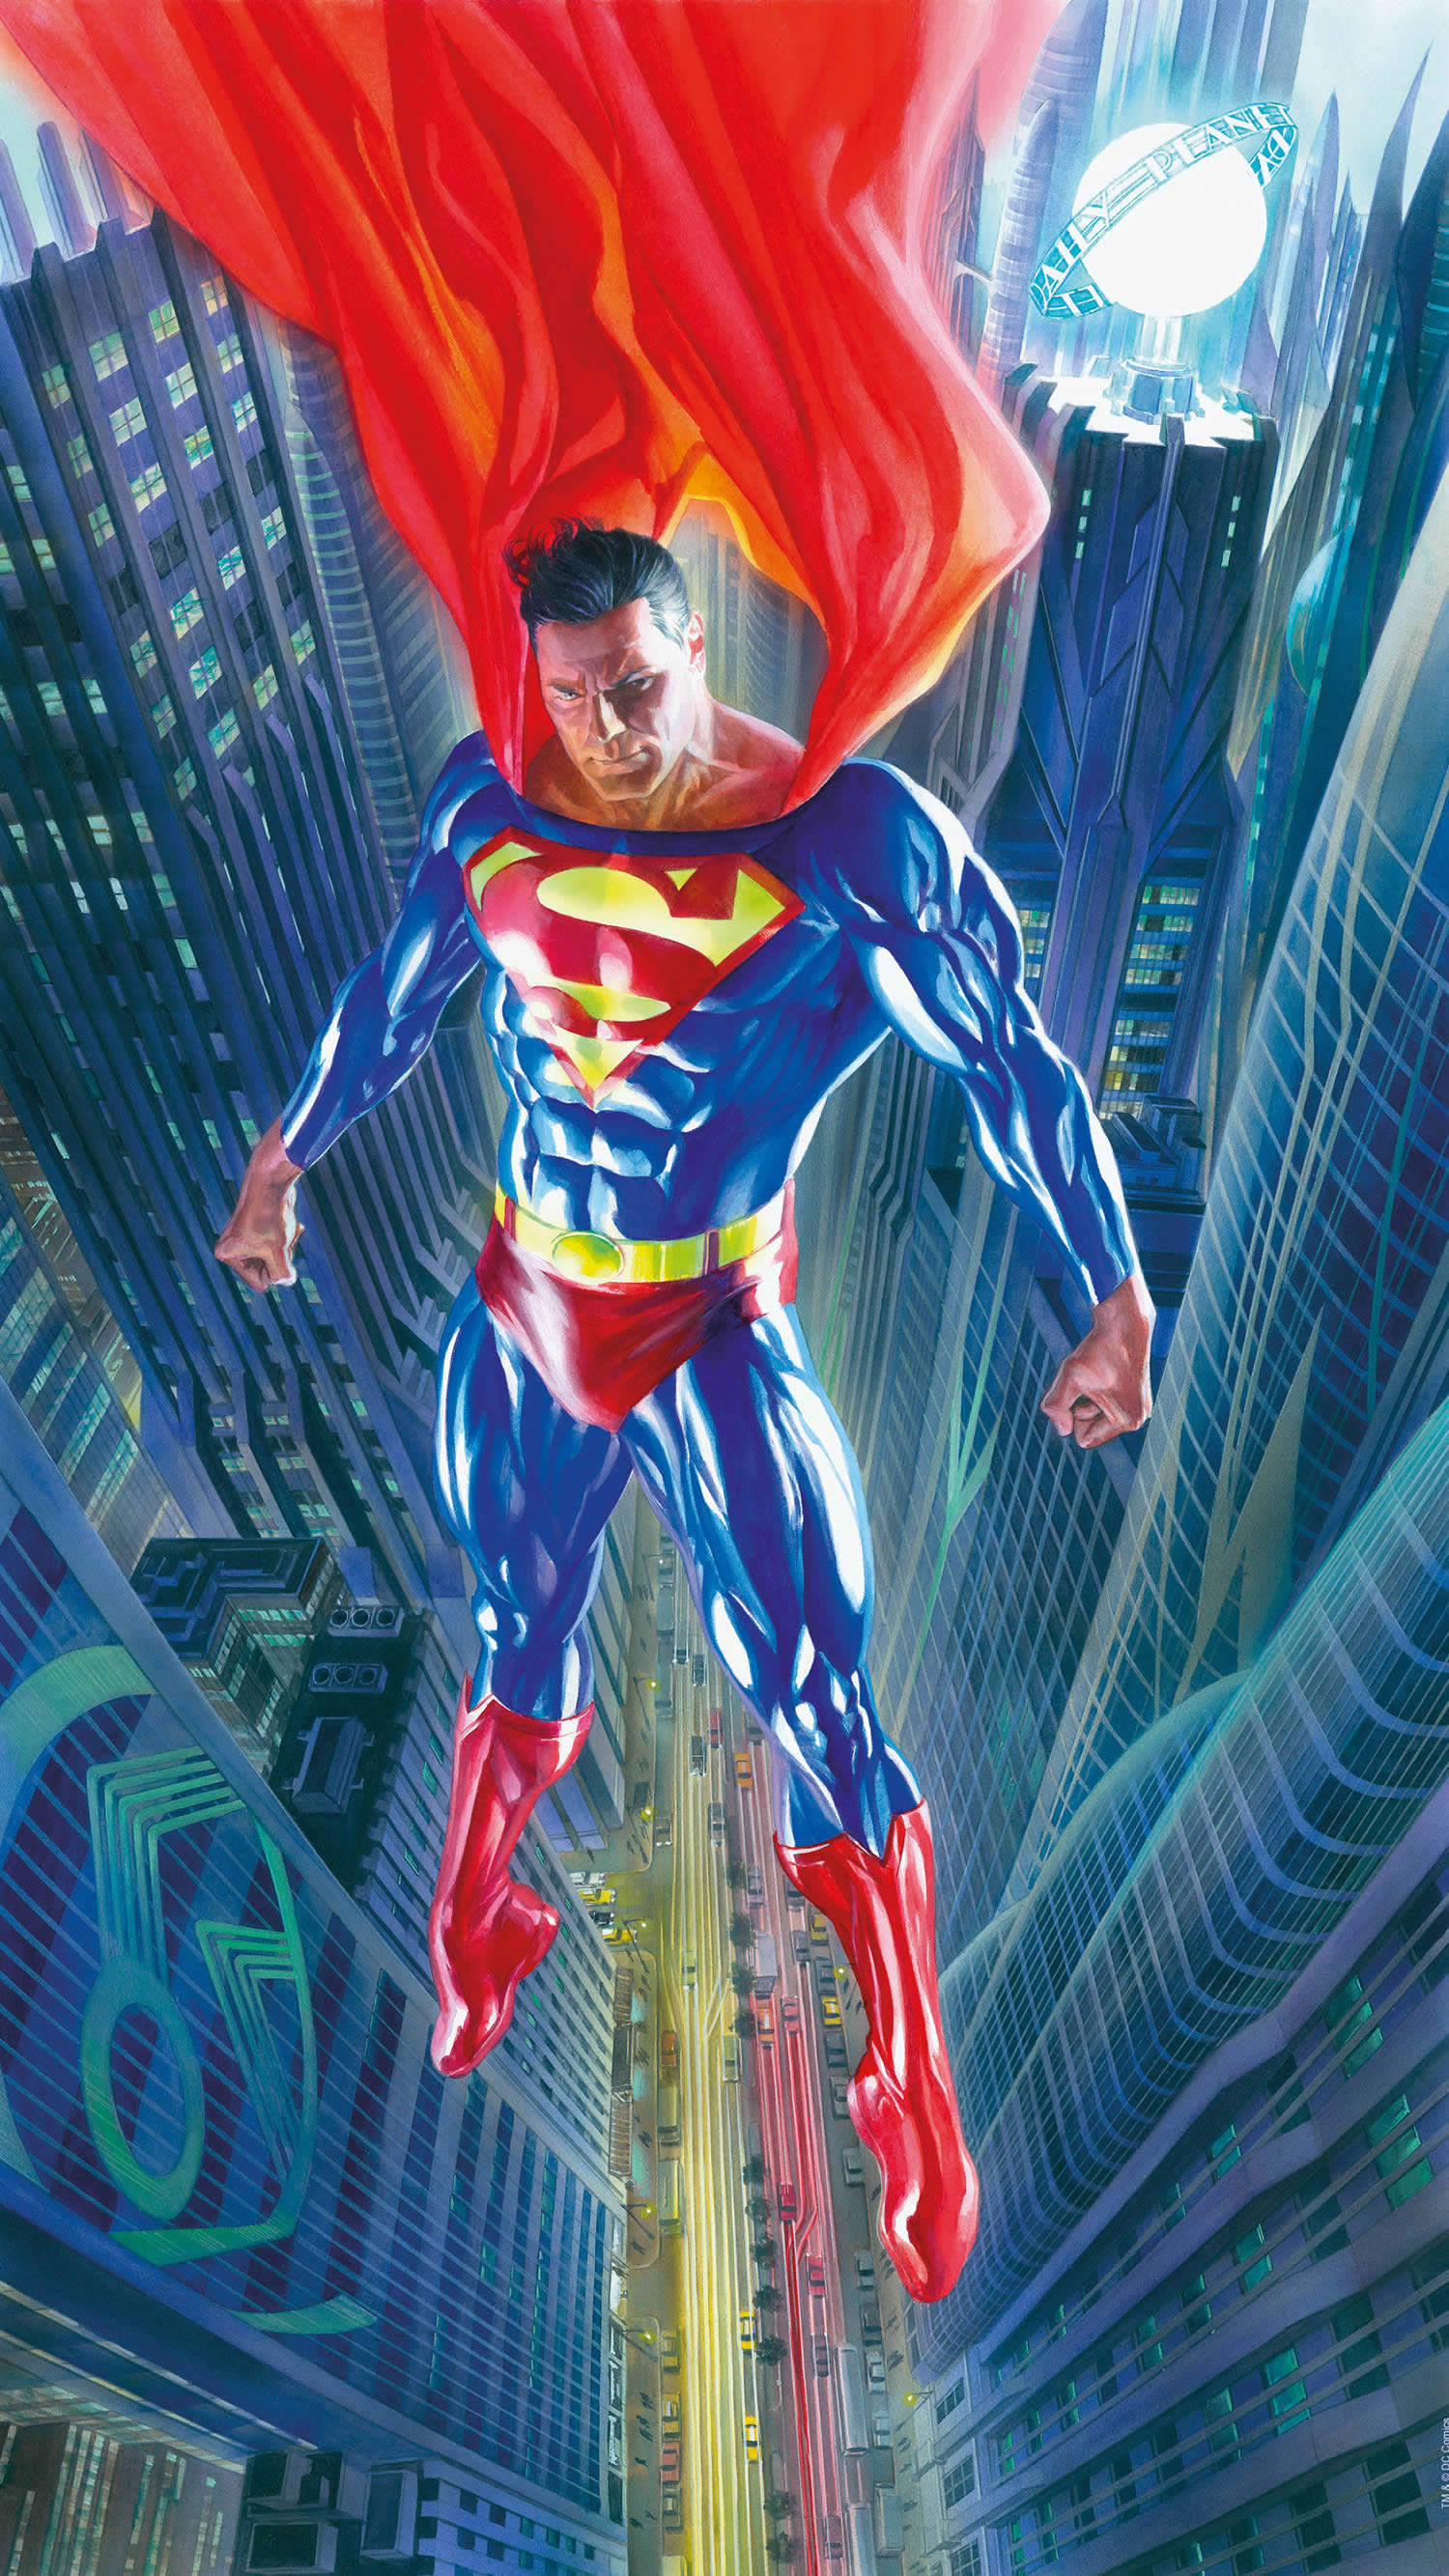 Alex Ross, Superman Forever Superman Forever The Alex Ross Collection £695.00 •Available Alex Ross, Descent On Gotham Descent on Gotham The Alex Ross Collection £695.00 •Low Availability Alex Ross, Look!